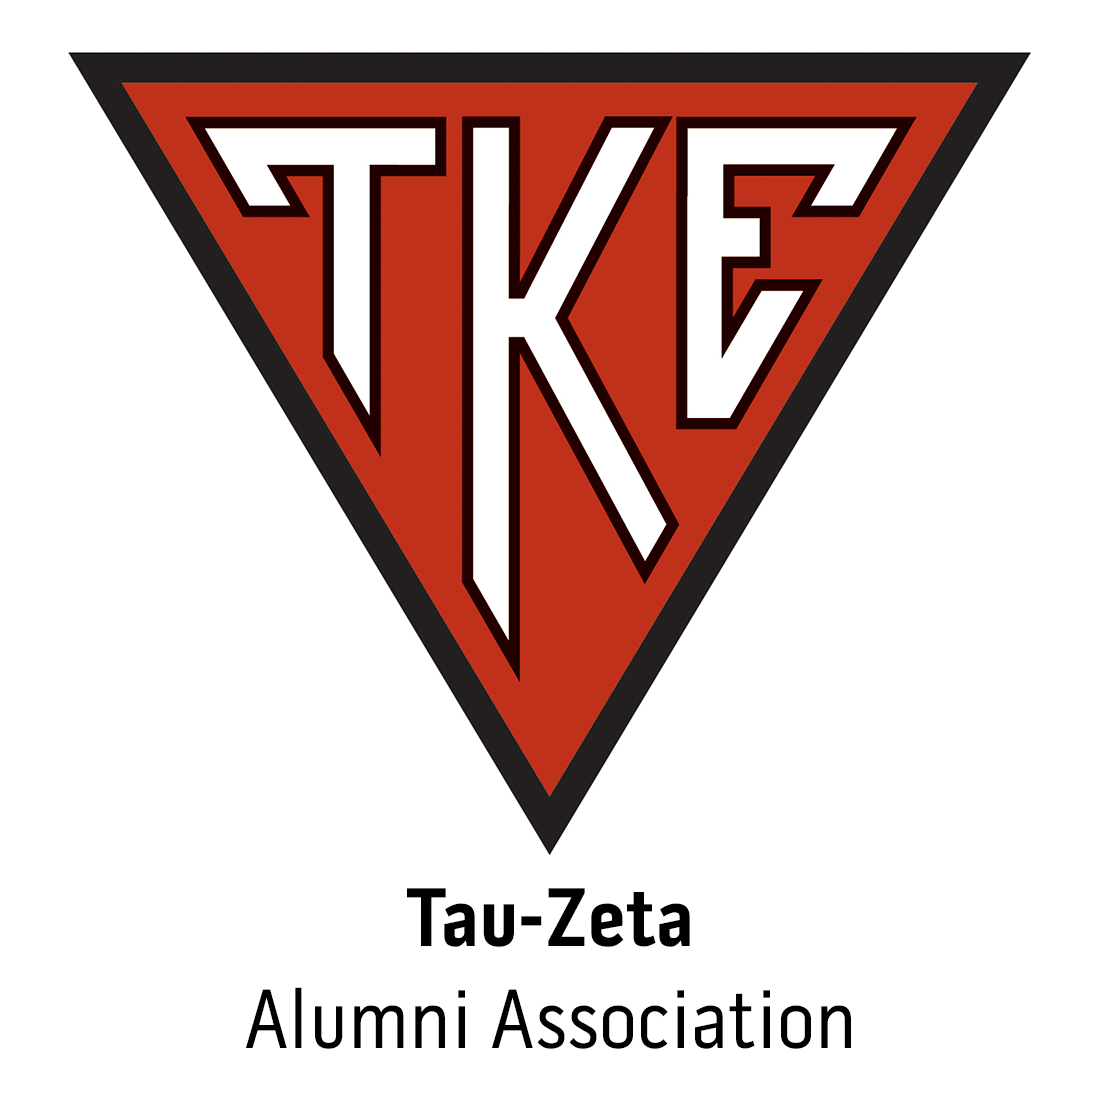 Tau-Zeta Alumni Association for Western Connecticut State University